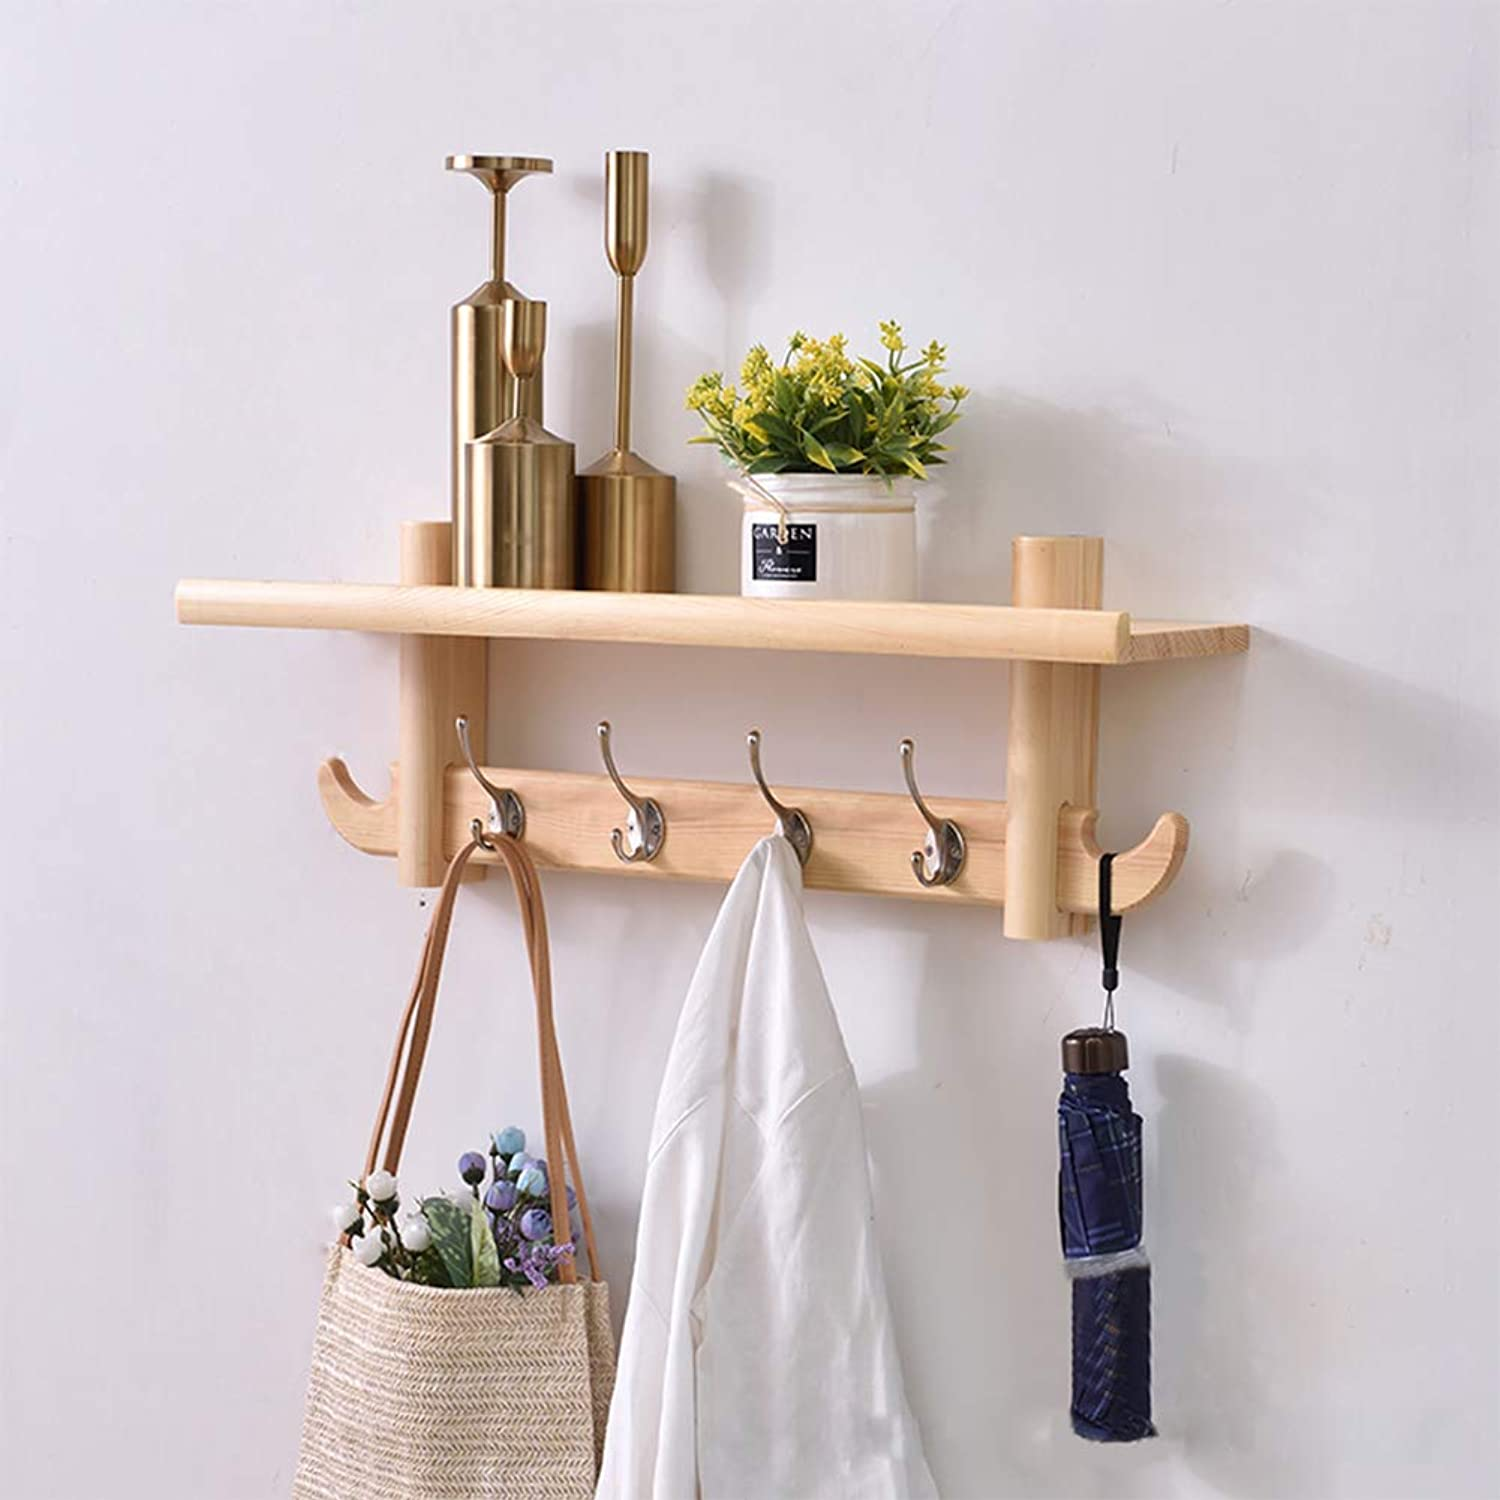 Coat Rack,Wall-Mounted European Style Solid Wood Punch Inssizetion Multifunctional Coat Rack for Entrance Hallway Bathroom Bedroom Study